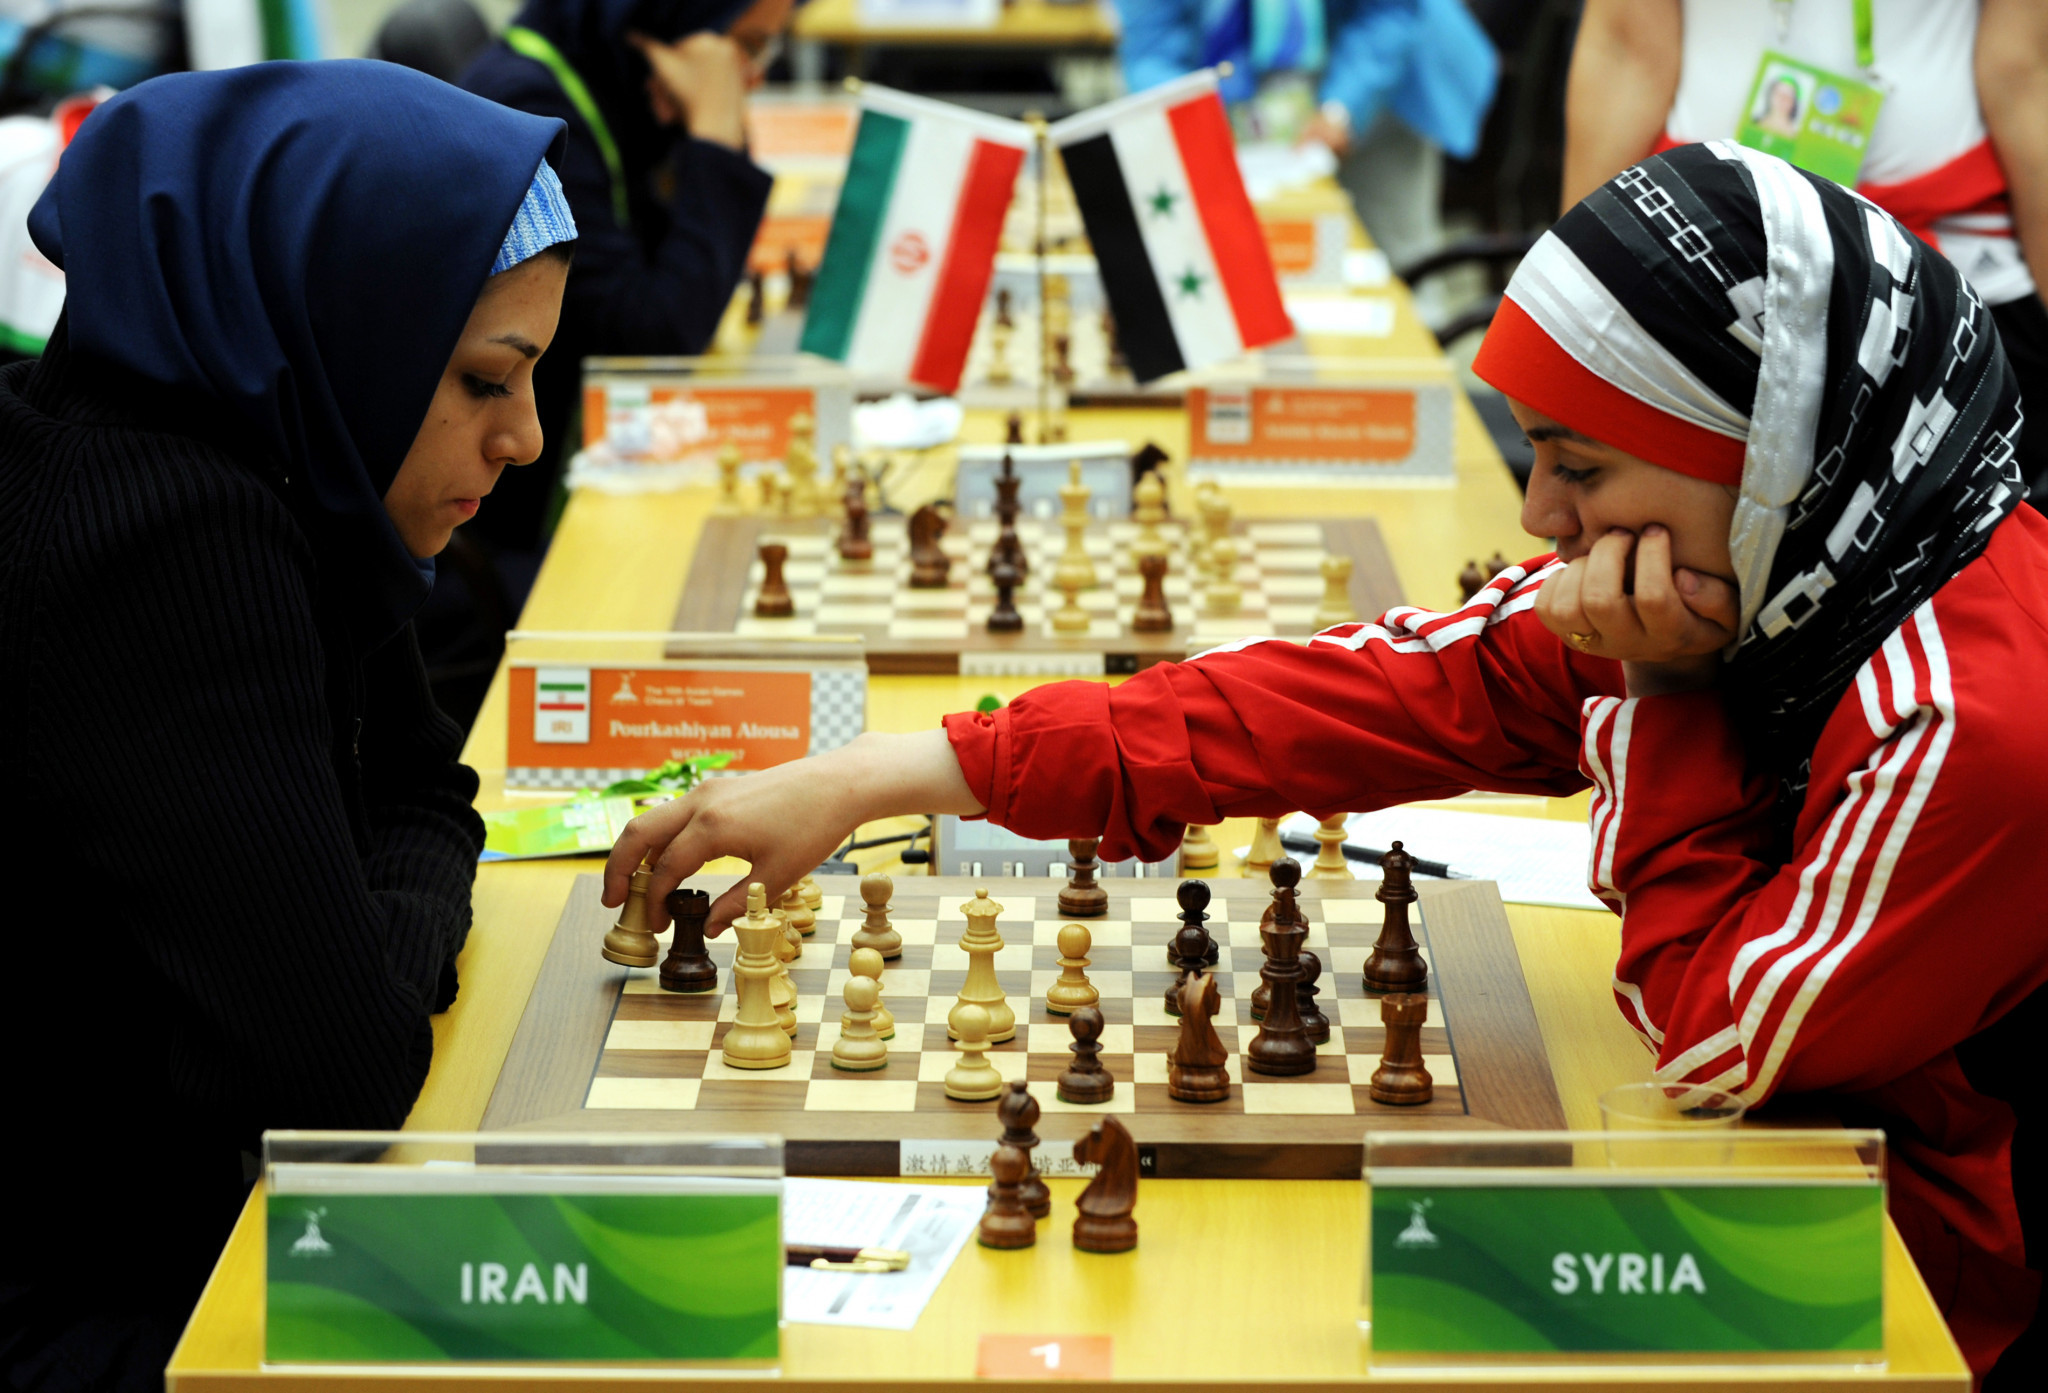 Chess has featured at multi-sport competitions such as the Asian Games, but is yet to reach Olympic inclusion ©Getty Images